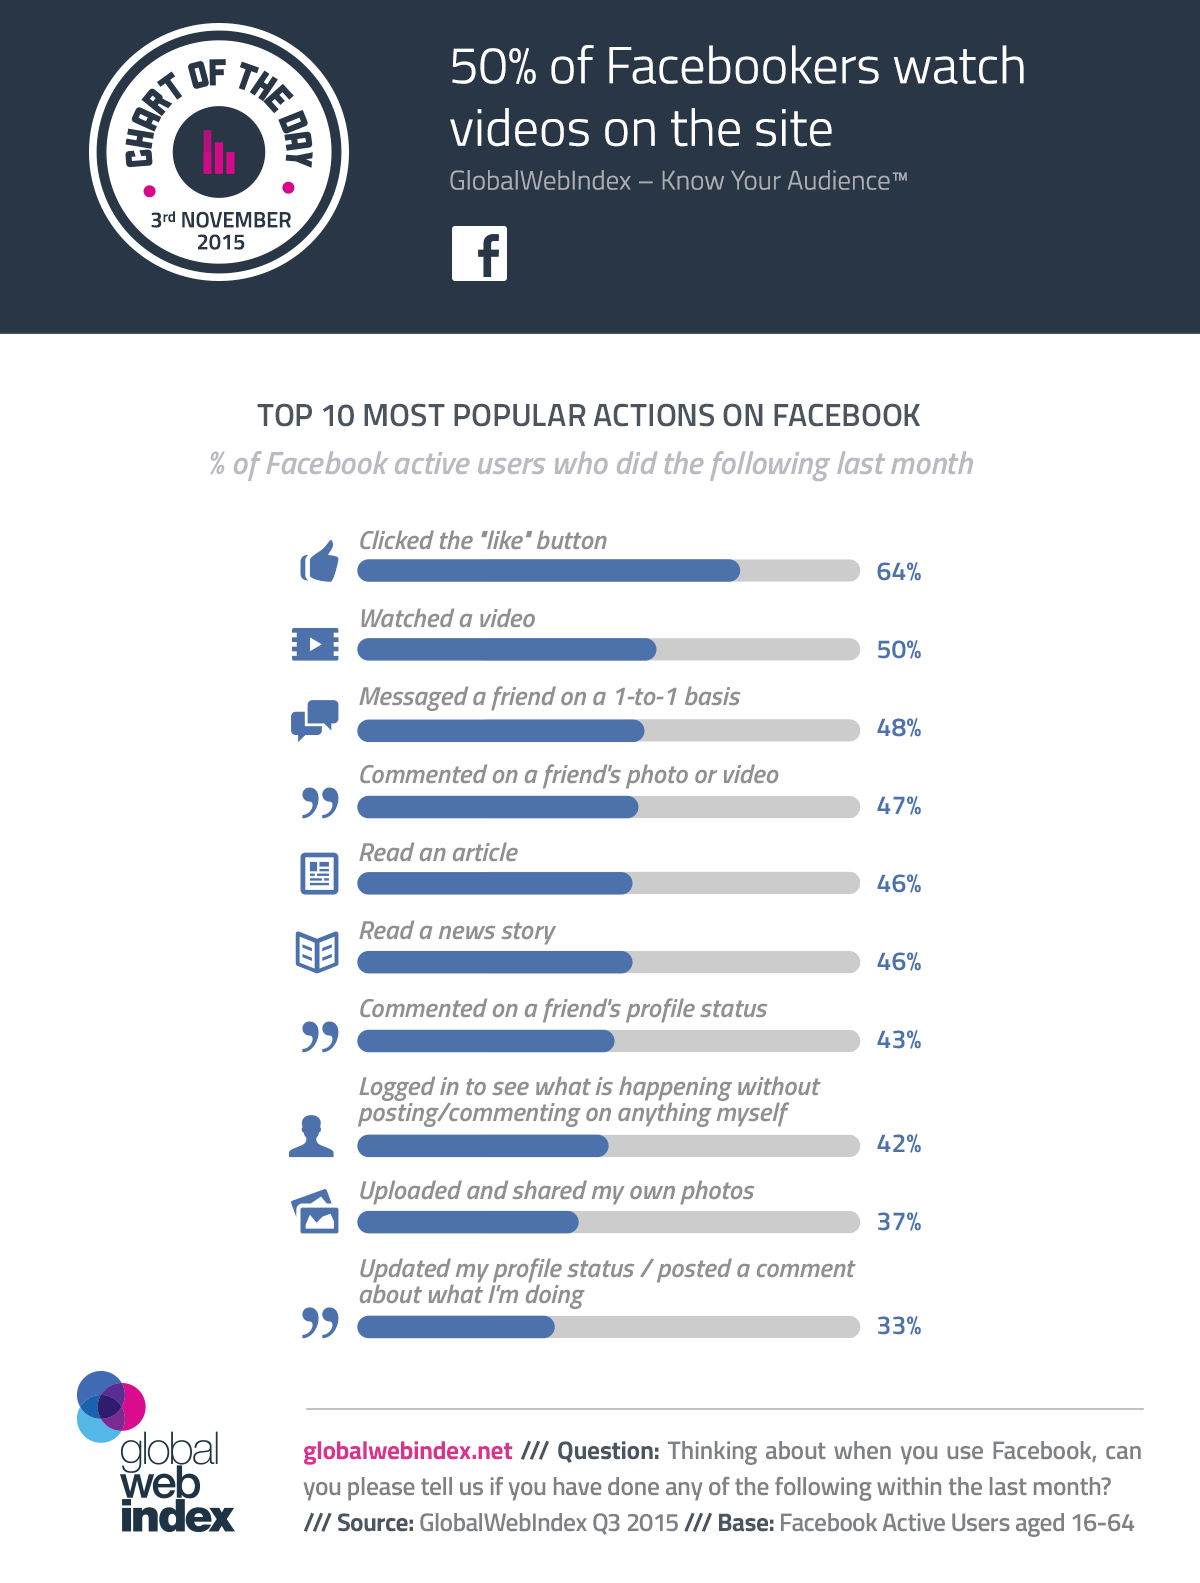 3rd-Nov-2015-50-percent-of-Facebookers-watch-videos-on-the-site